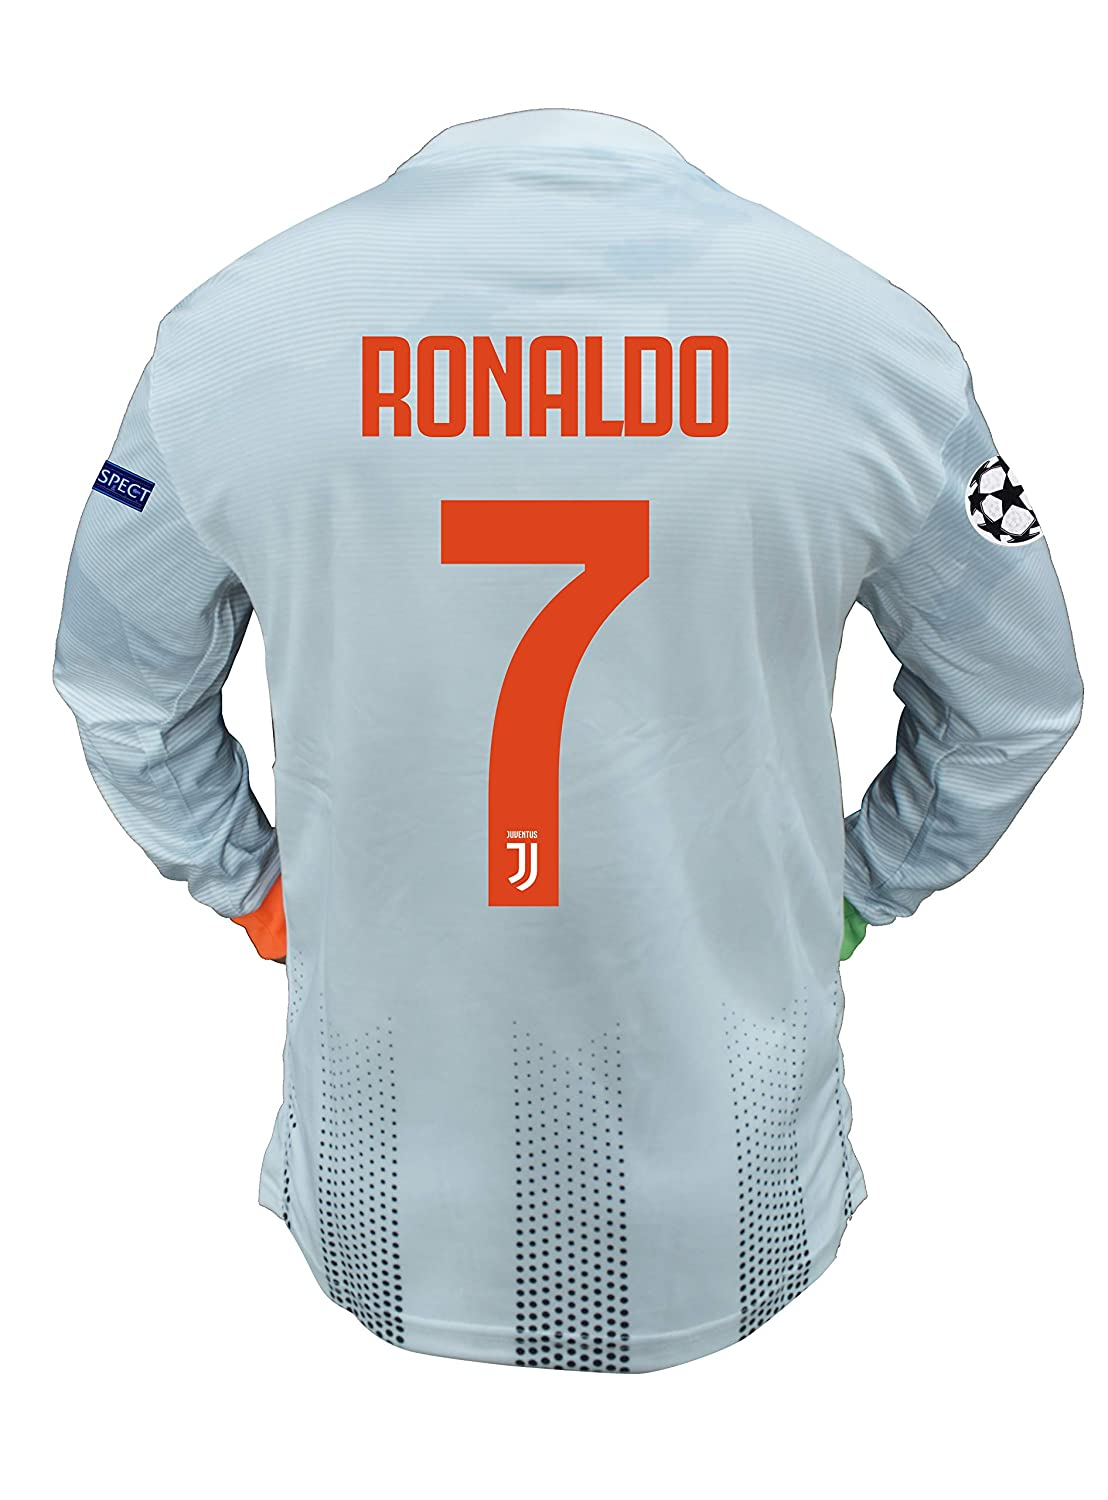 Ronaldo 7 Printed Juventus Full Sleeves Champions League Palace Imported Jersey 2019 20 With Shorts Xl Amazon In Sports Fitness Outdoors